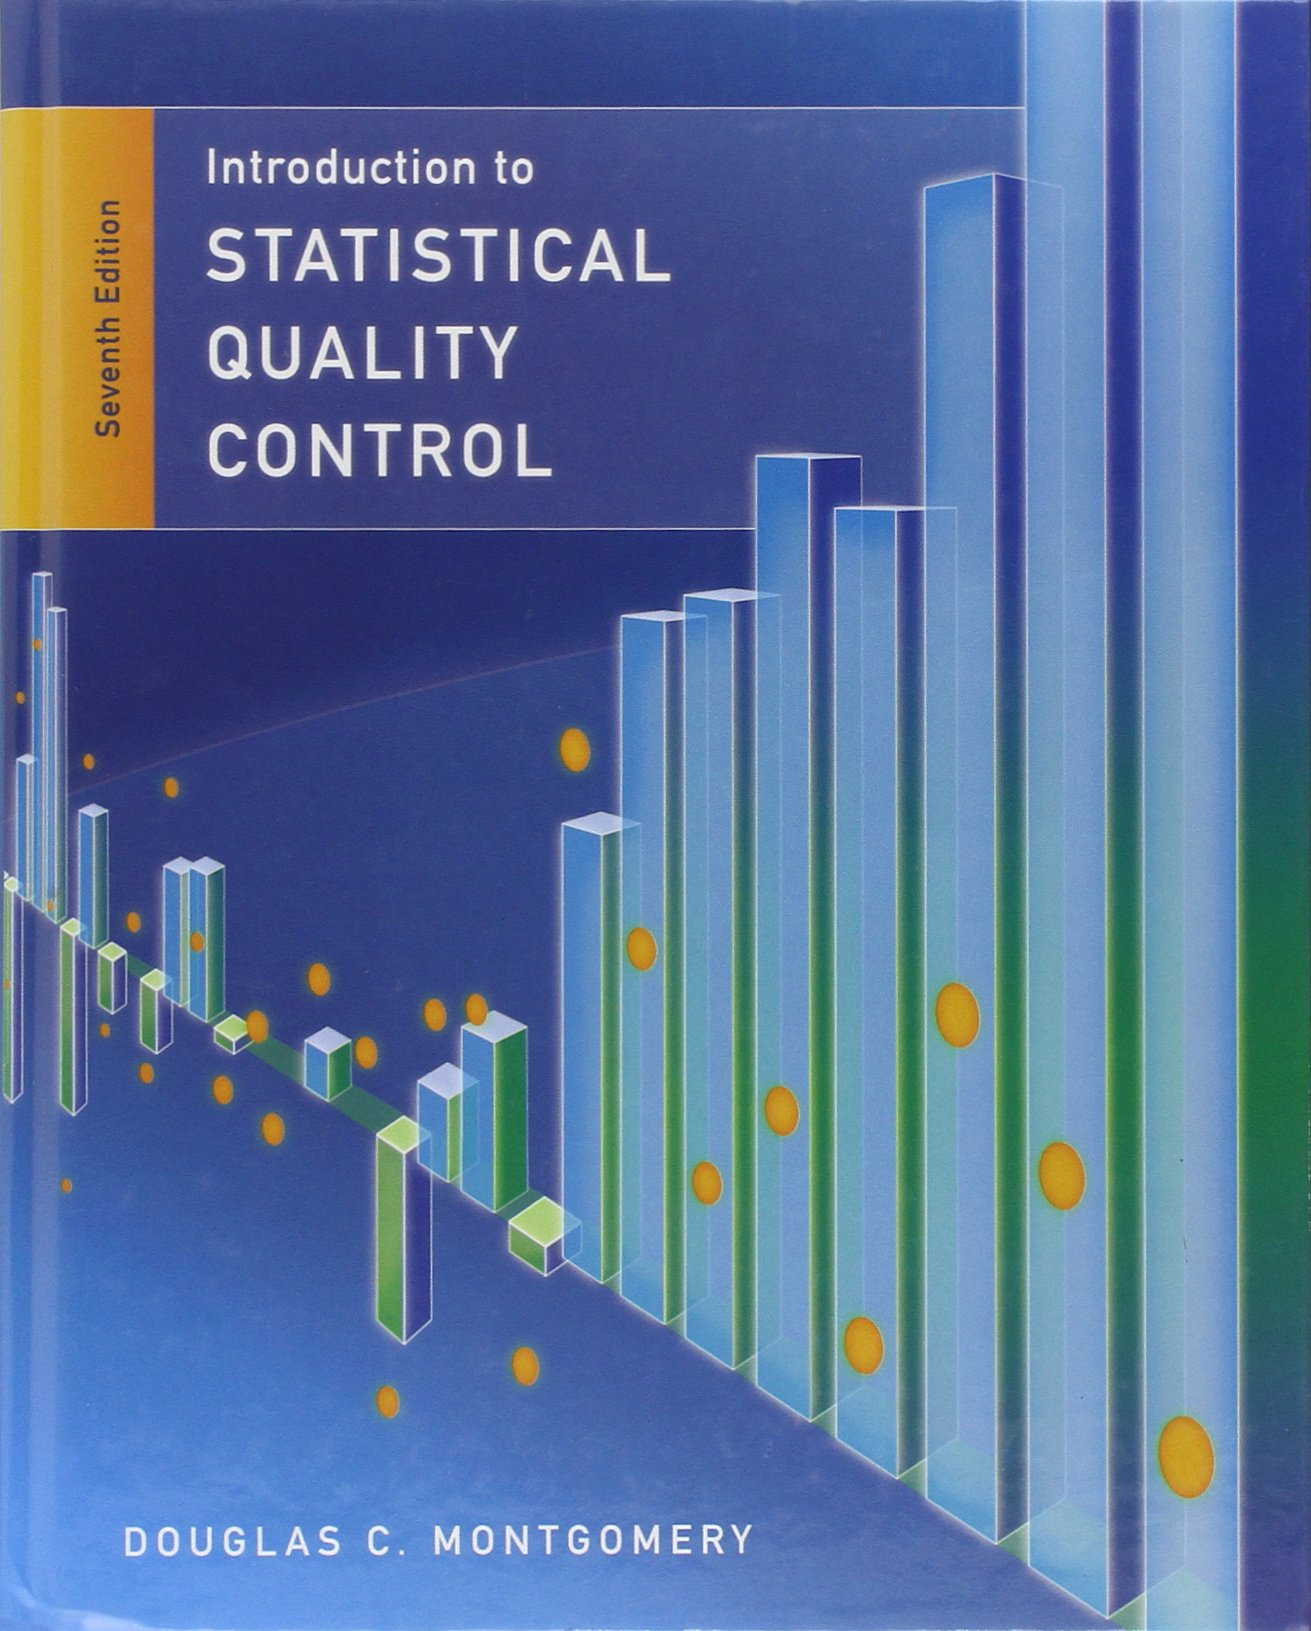 Statistical quality control 7th edition pdf.